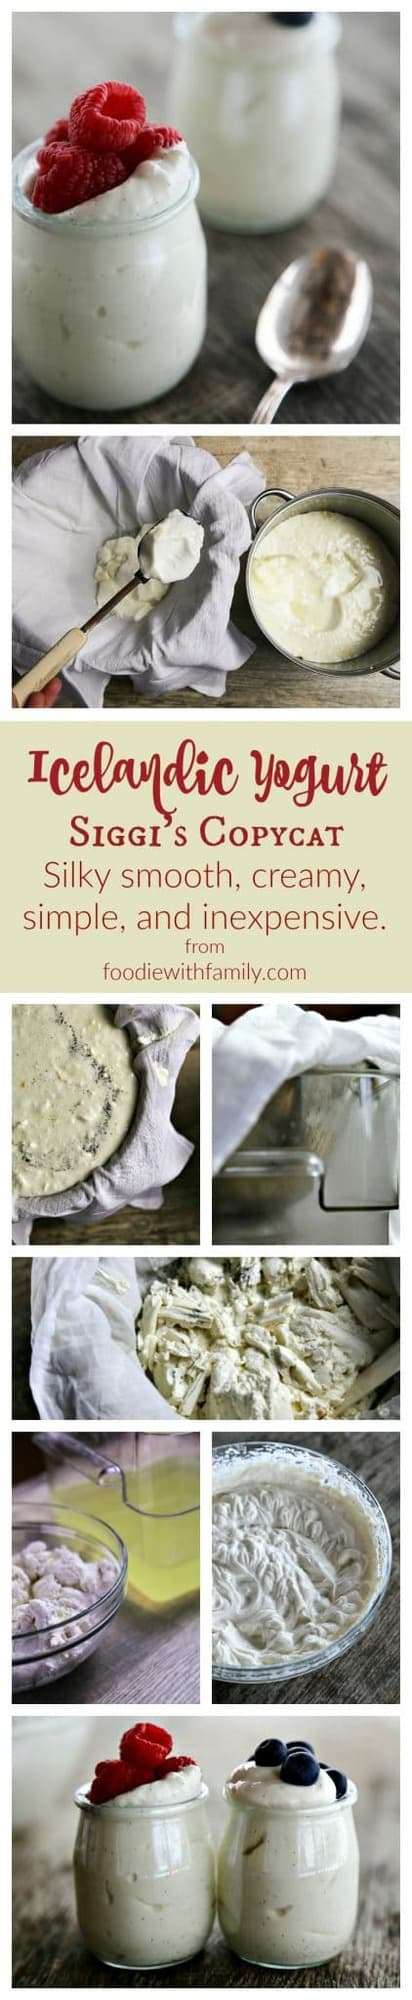 Super creamy, silky smooth, low fat, high protein, inexpensive, and easy as can be is homemade Icelandic Yogurt or Siggi's Copycat.